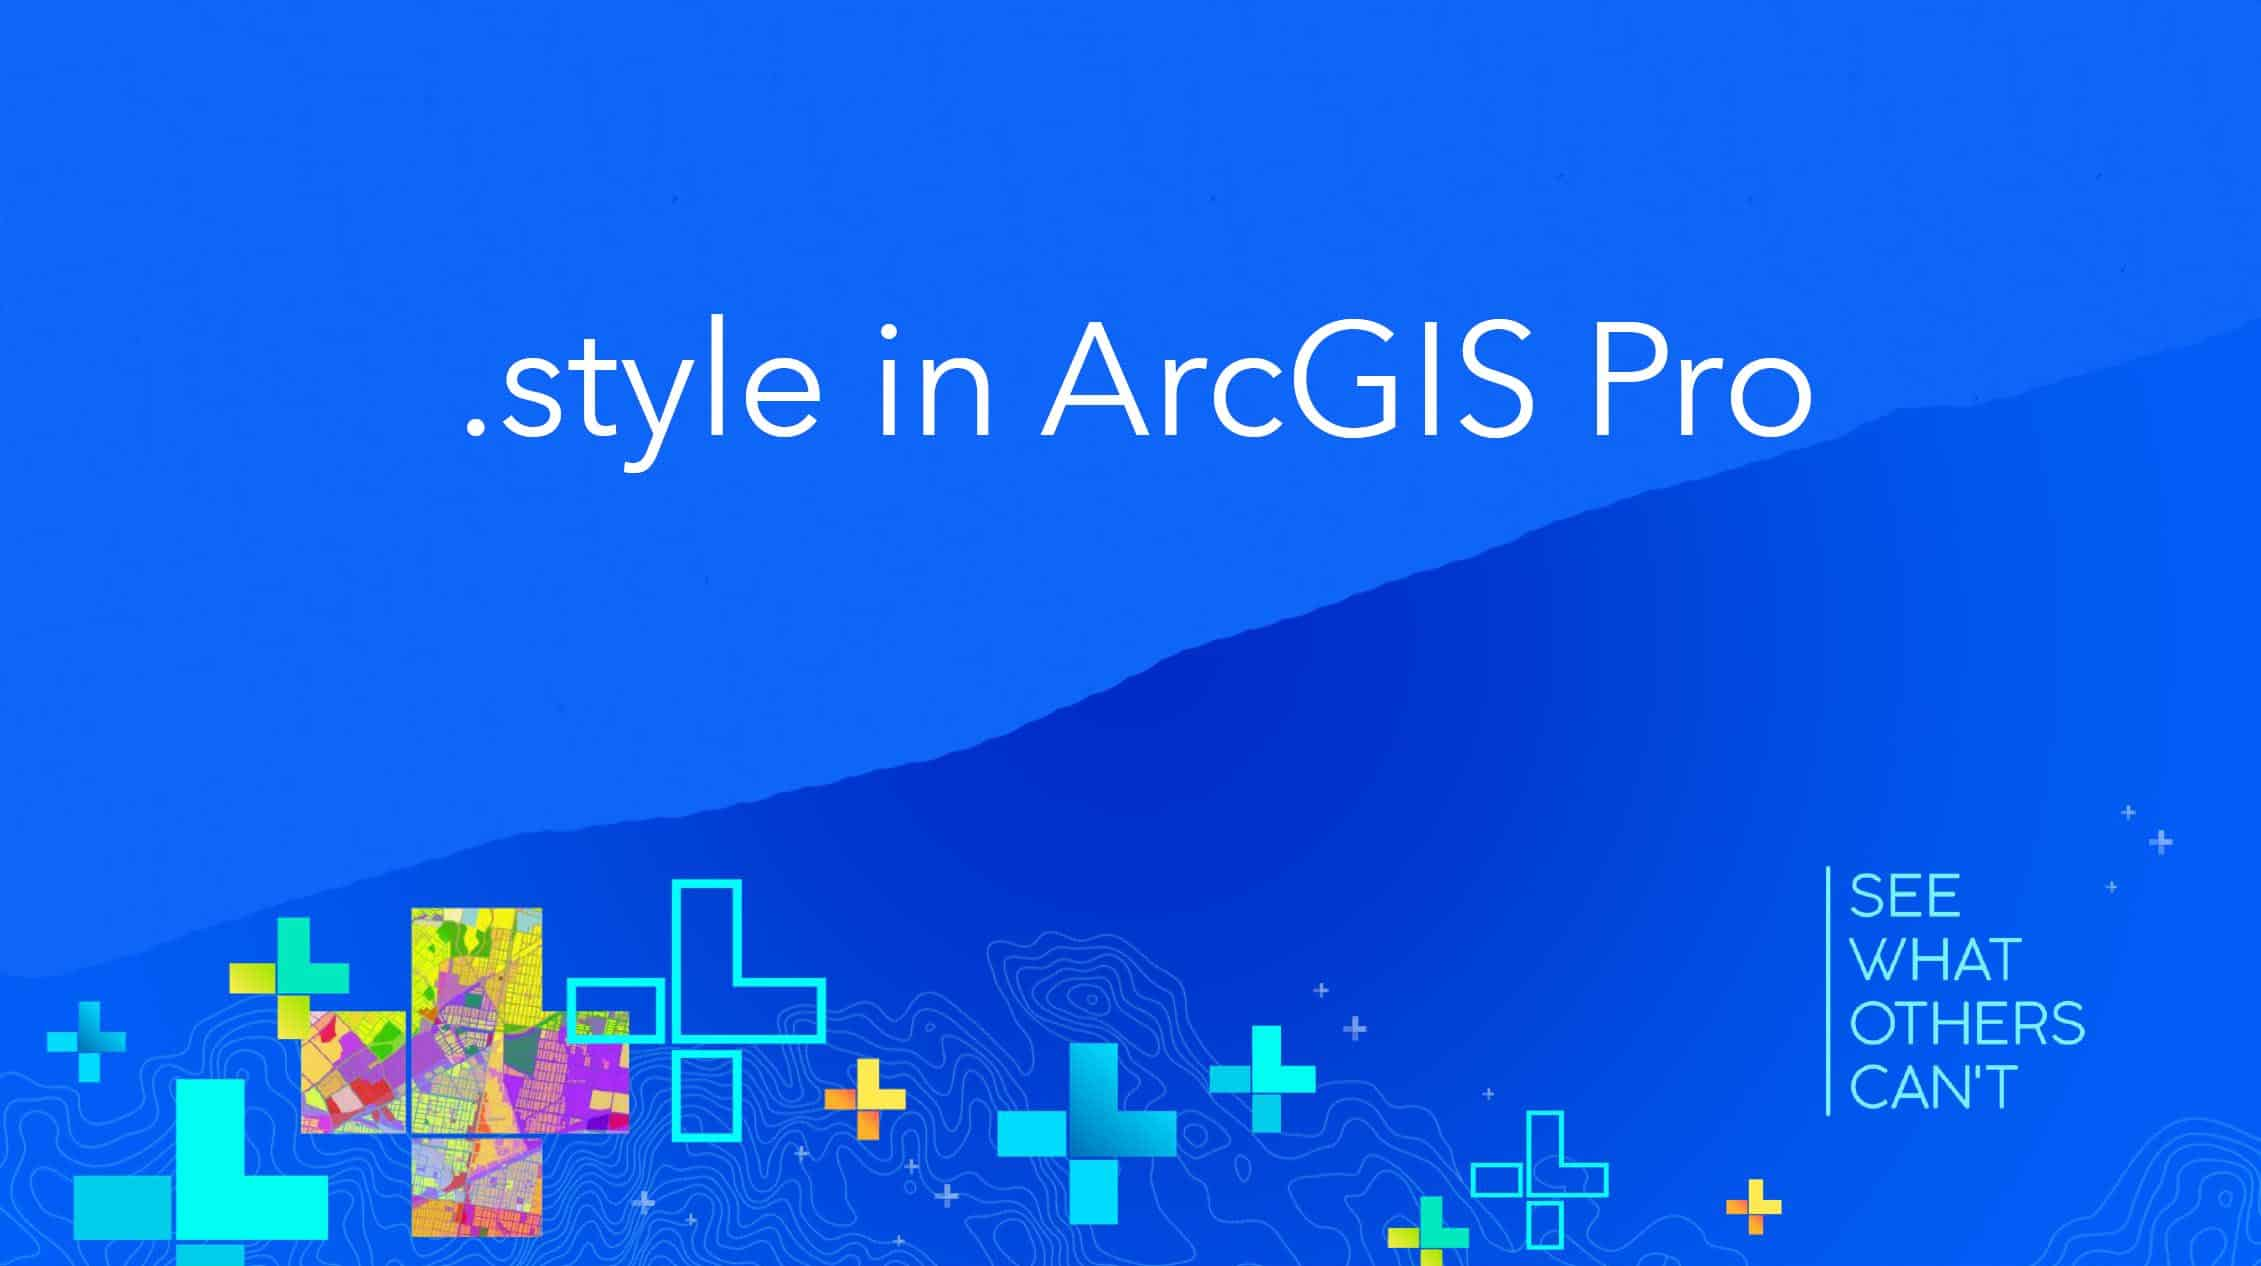 Featured image - style in ArcGIS Pro